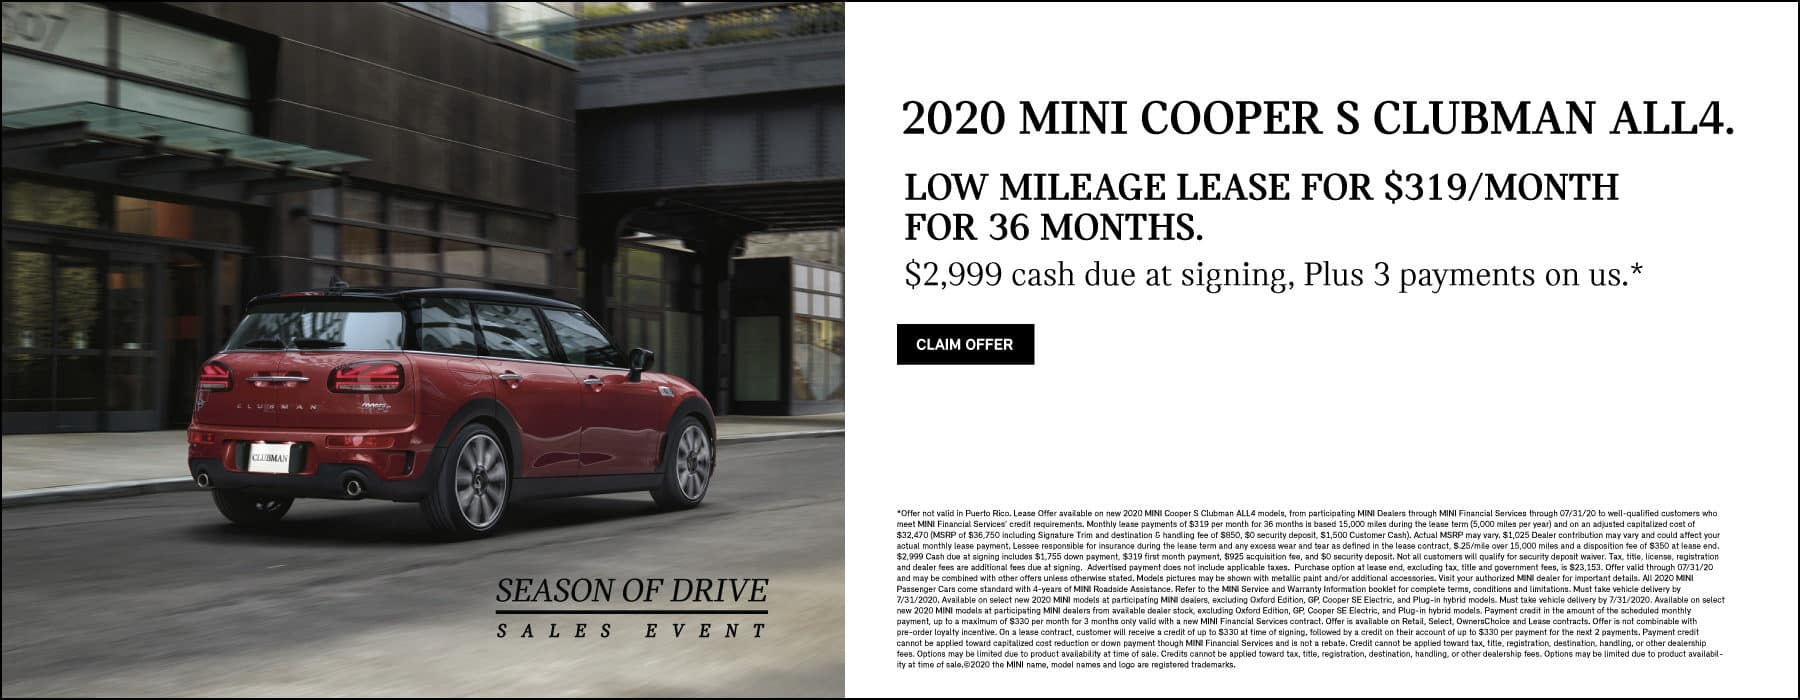 MINI COOPER S CLUBMAN ALL4 $319/MONTH FOR 36 MONTHS